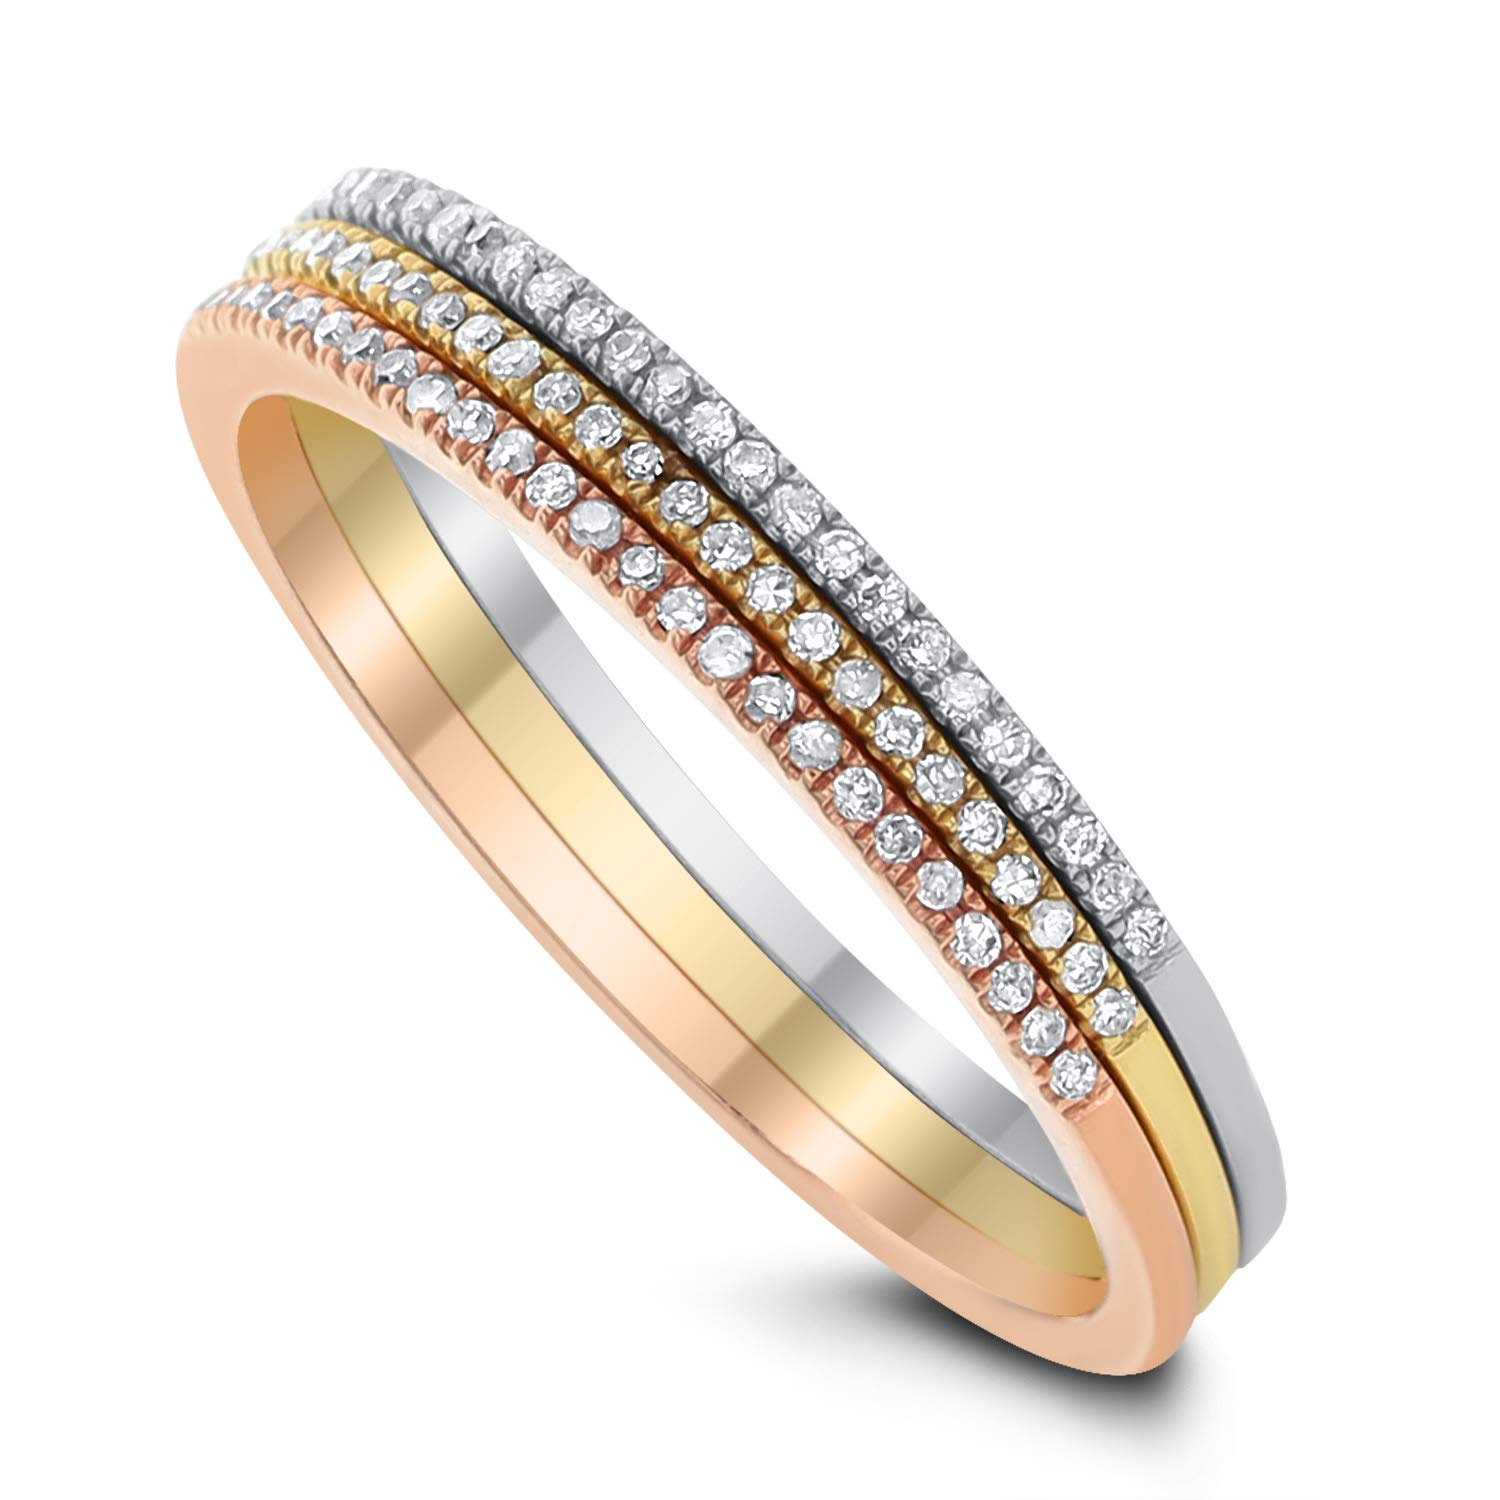 DIAMOND COUTURE 14K 0.25-Carat Diamond Tri-Tone Gold Set of 3 Rings, 14K White, Yellow and Rose gold, I-J Color, I1-I2 Clarity